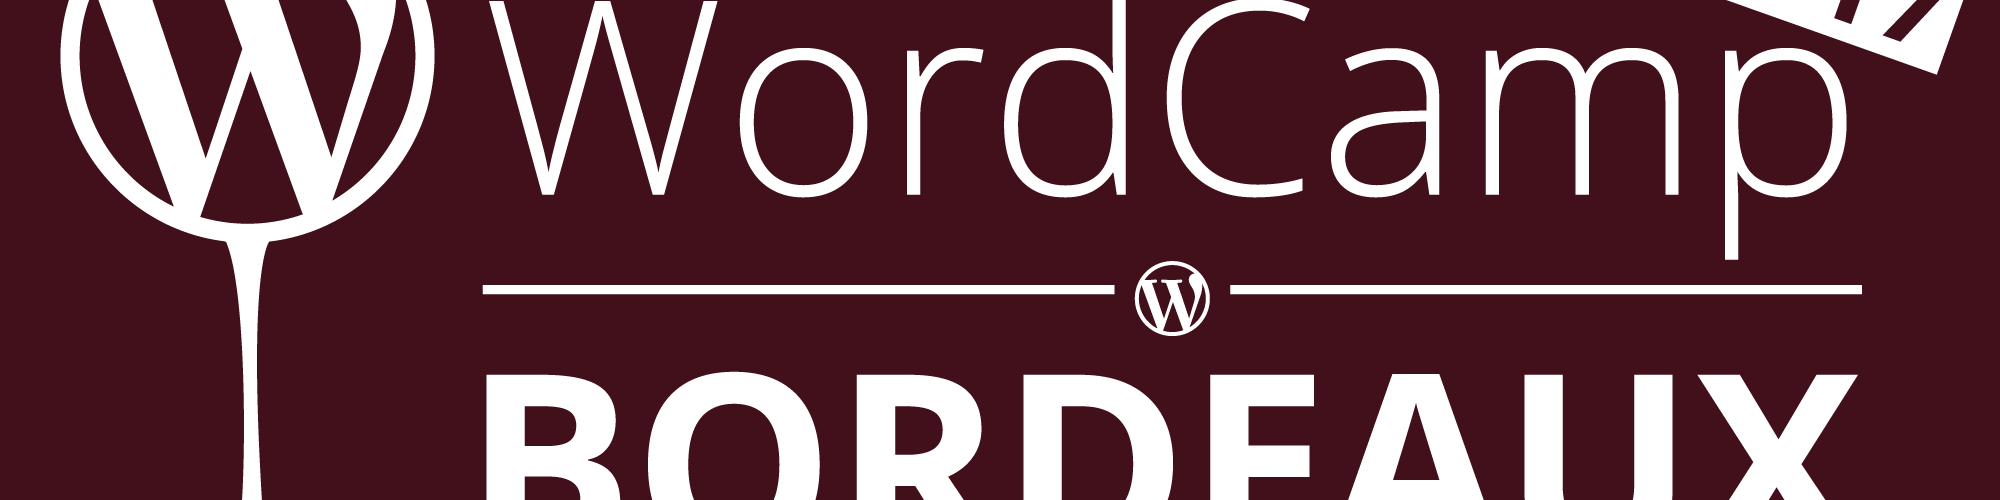 WordCamp Bordeaux 2017